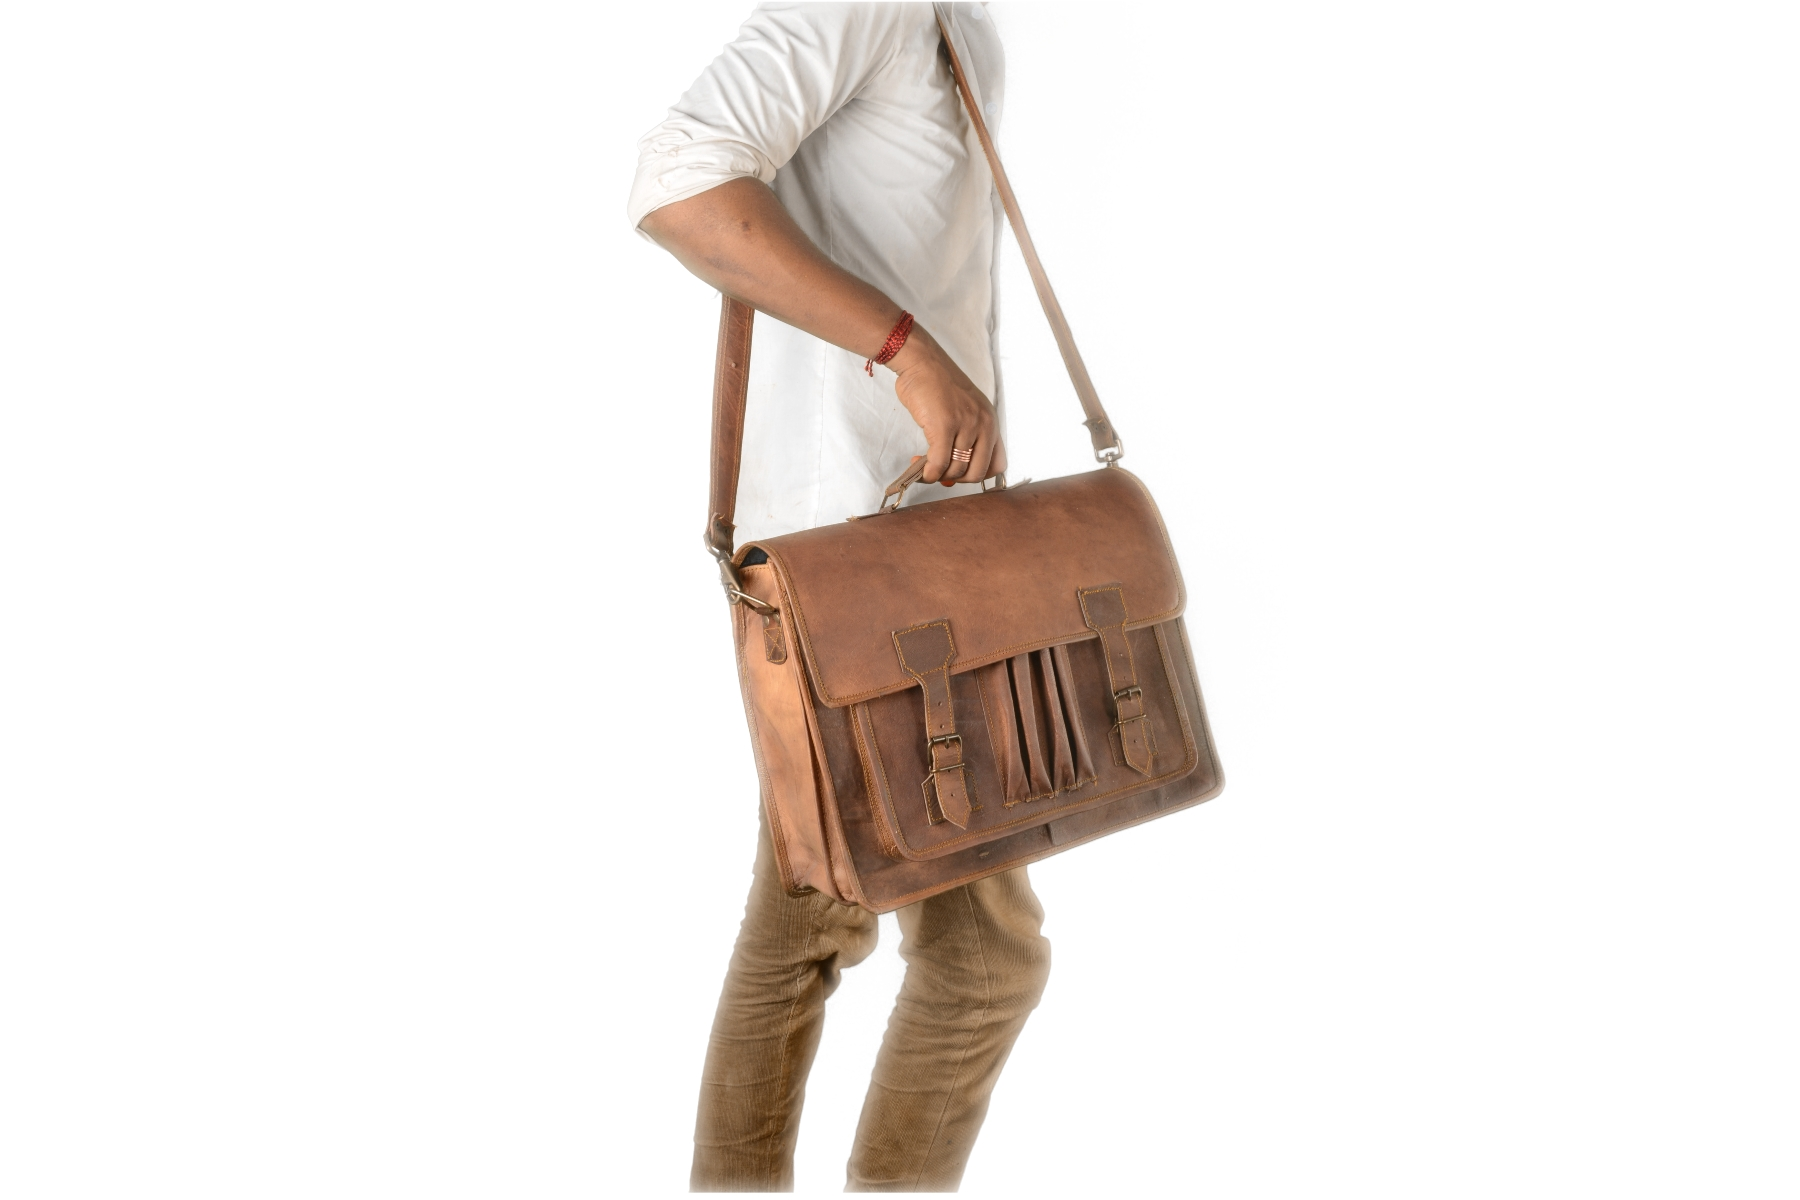 Ipad Tablet Bag Leather Satchel